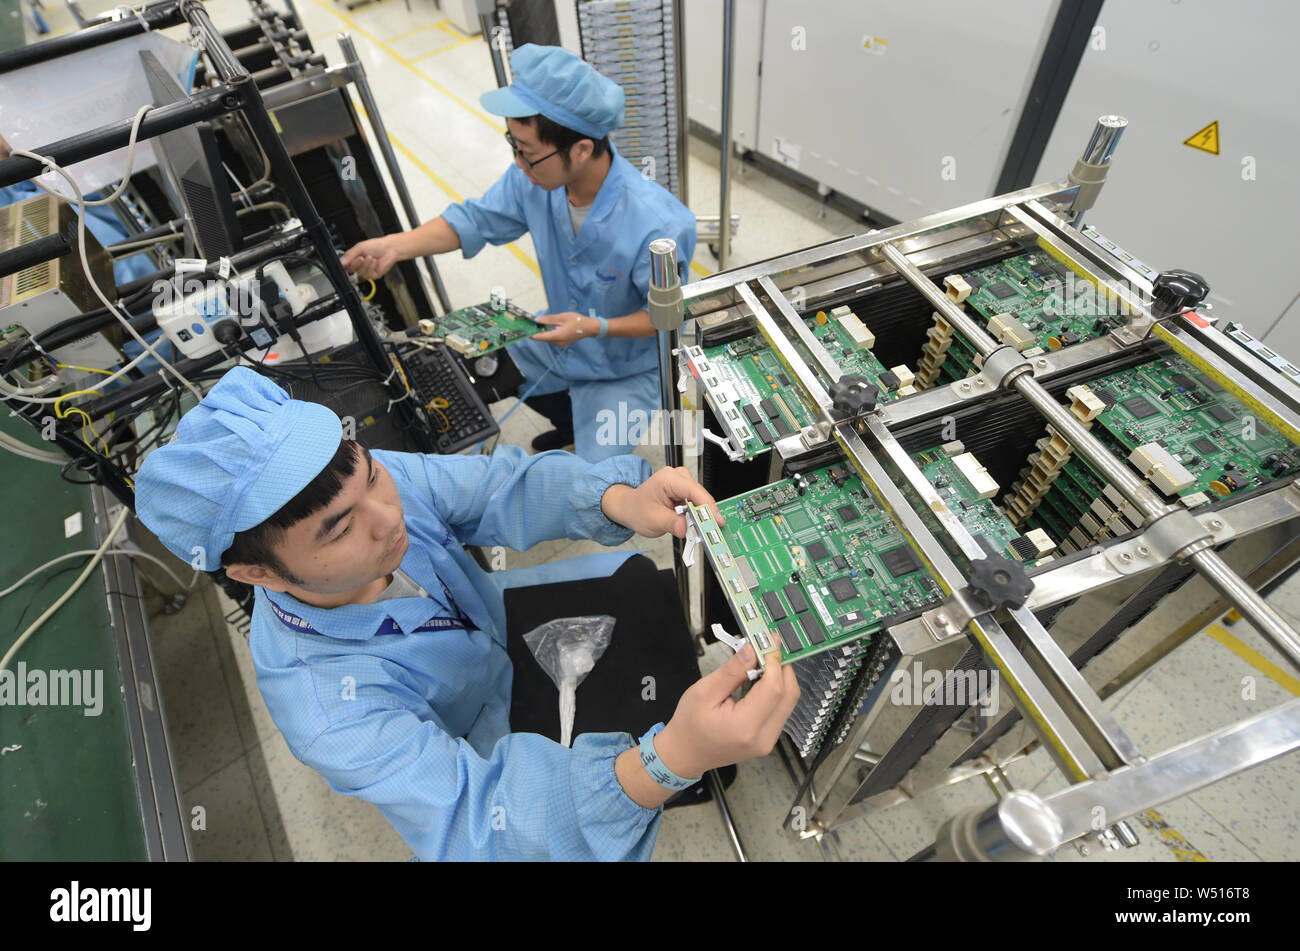 70 70 Stock Photos & 70 70 Stock Images - Page 12 - Alamy